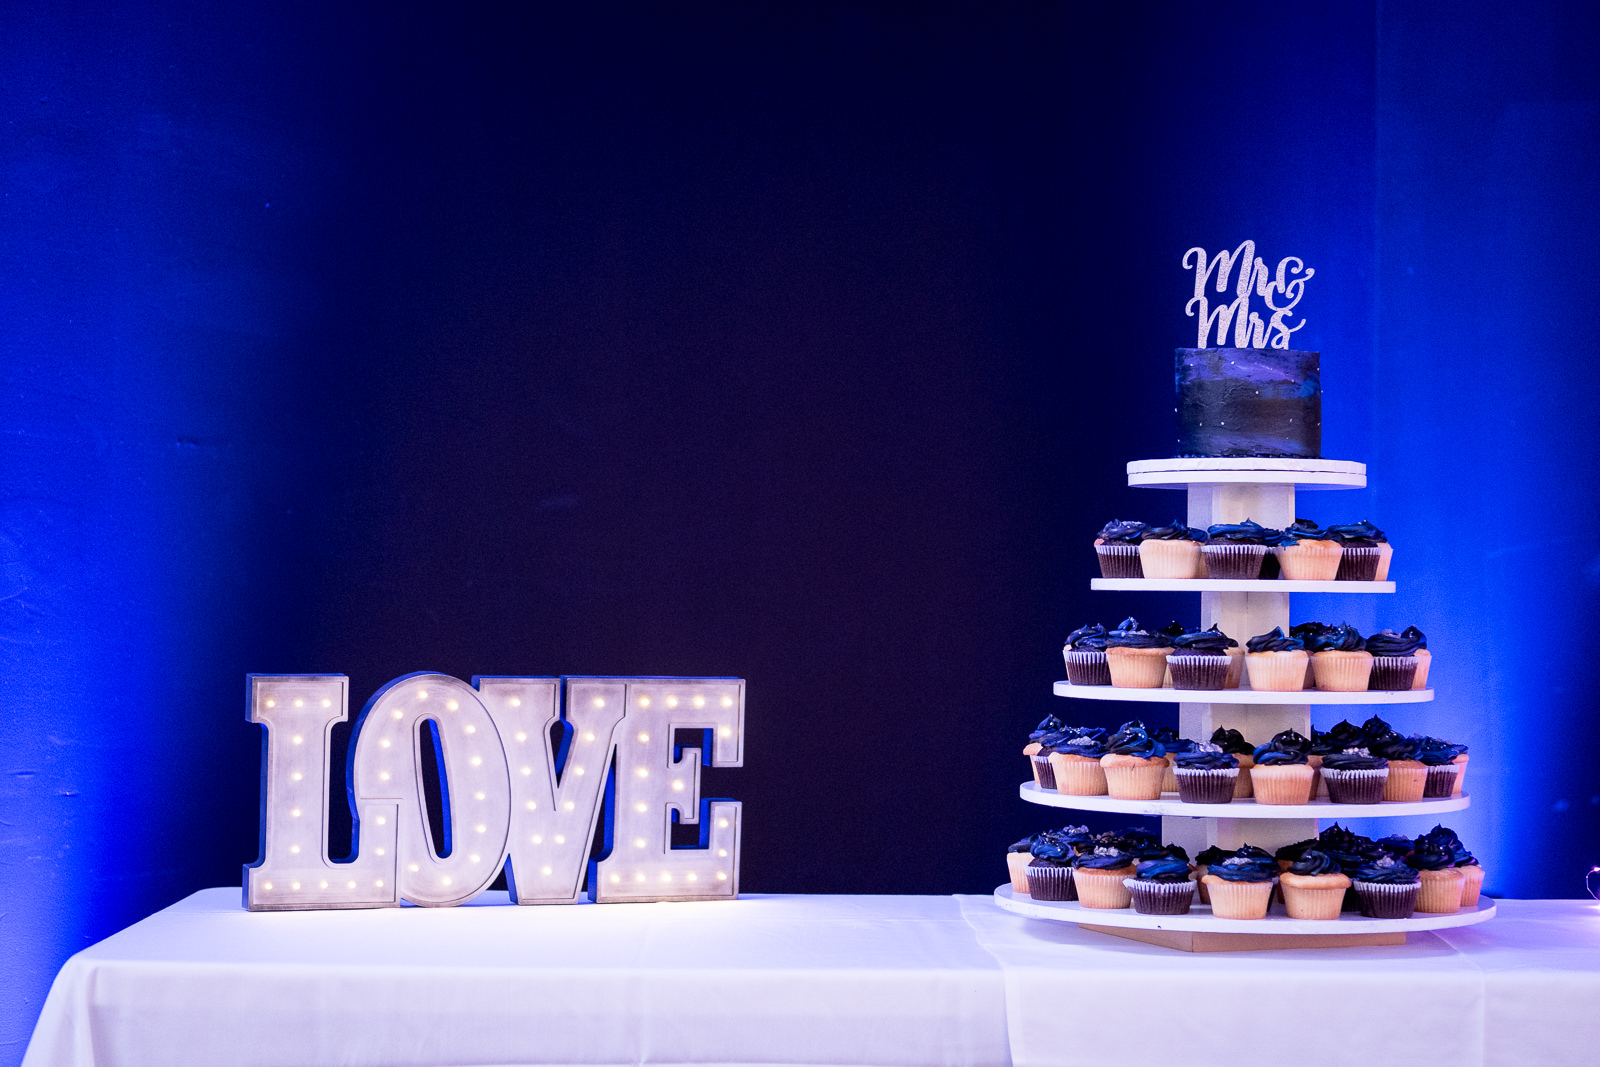 Rochester, NY Wedding - Rochester Museum & Science Center Reception - Get Caked cupcakes 074-XT2B7671.jpg